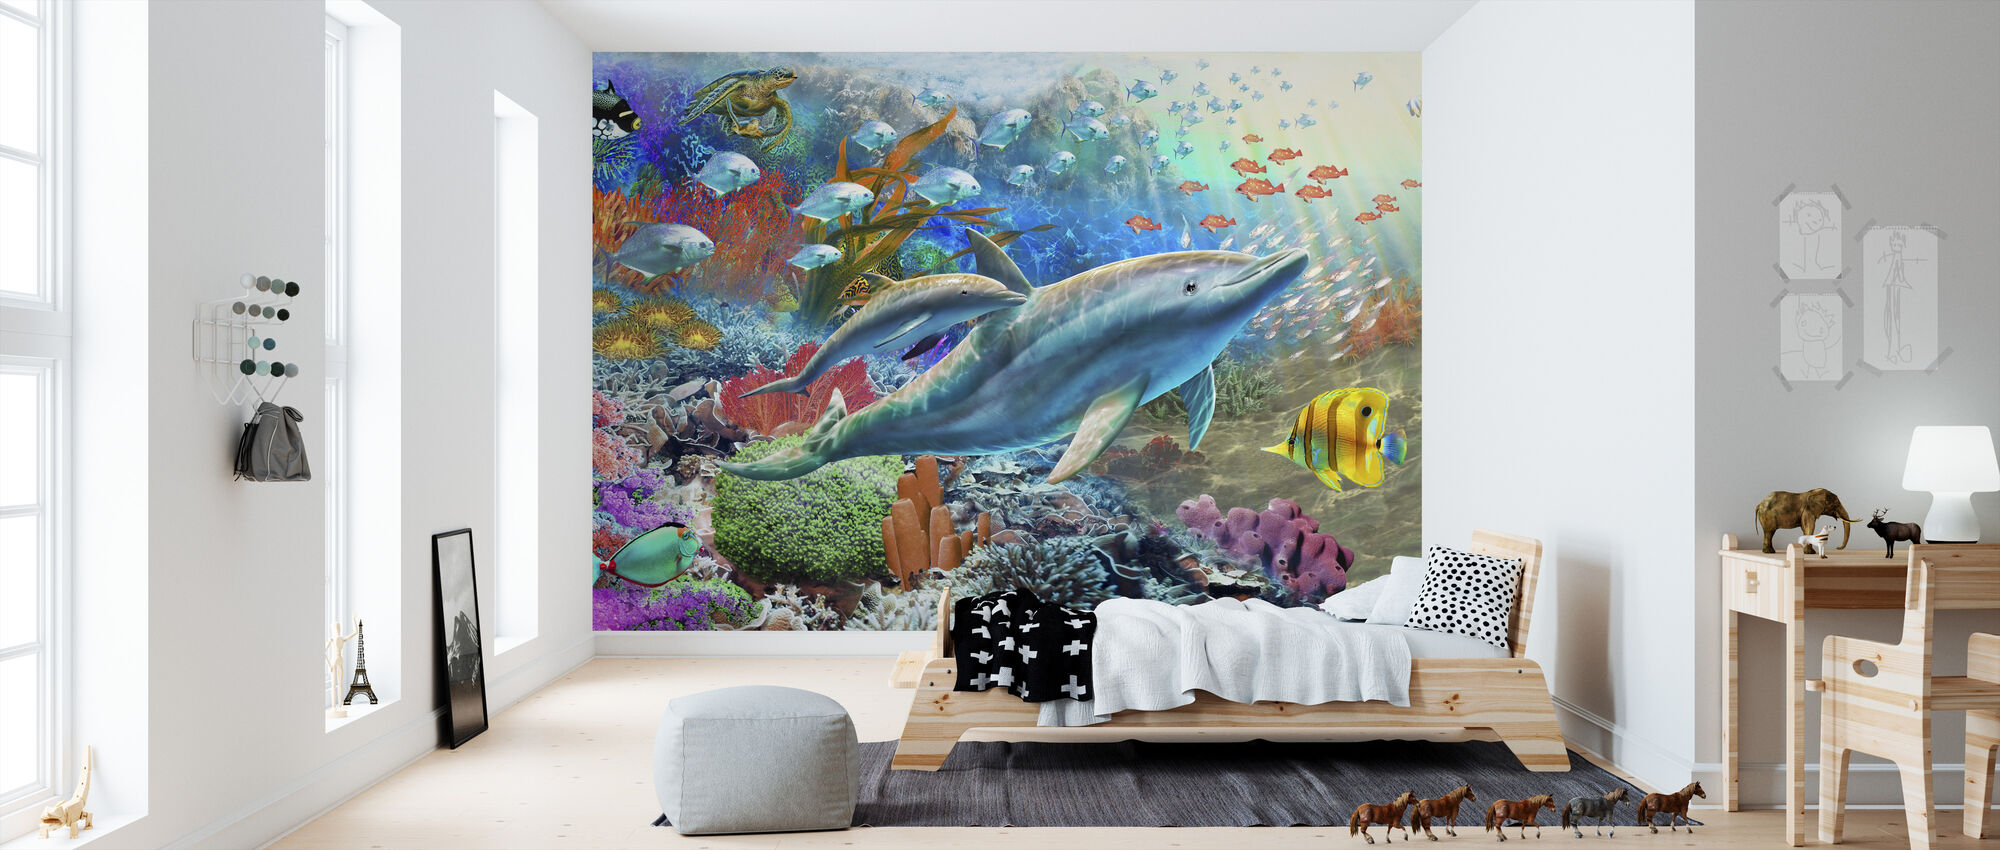 Land and Water Utopia I - Wallpaper - Kids Room